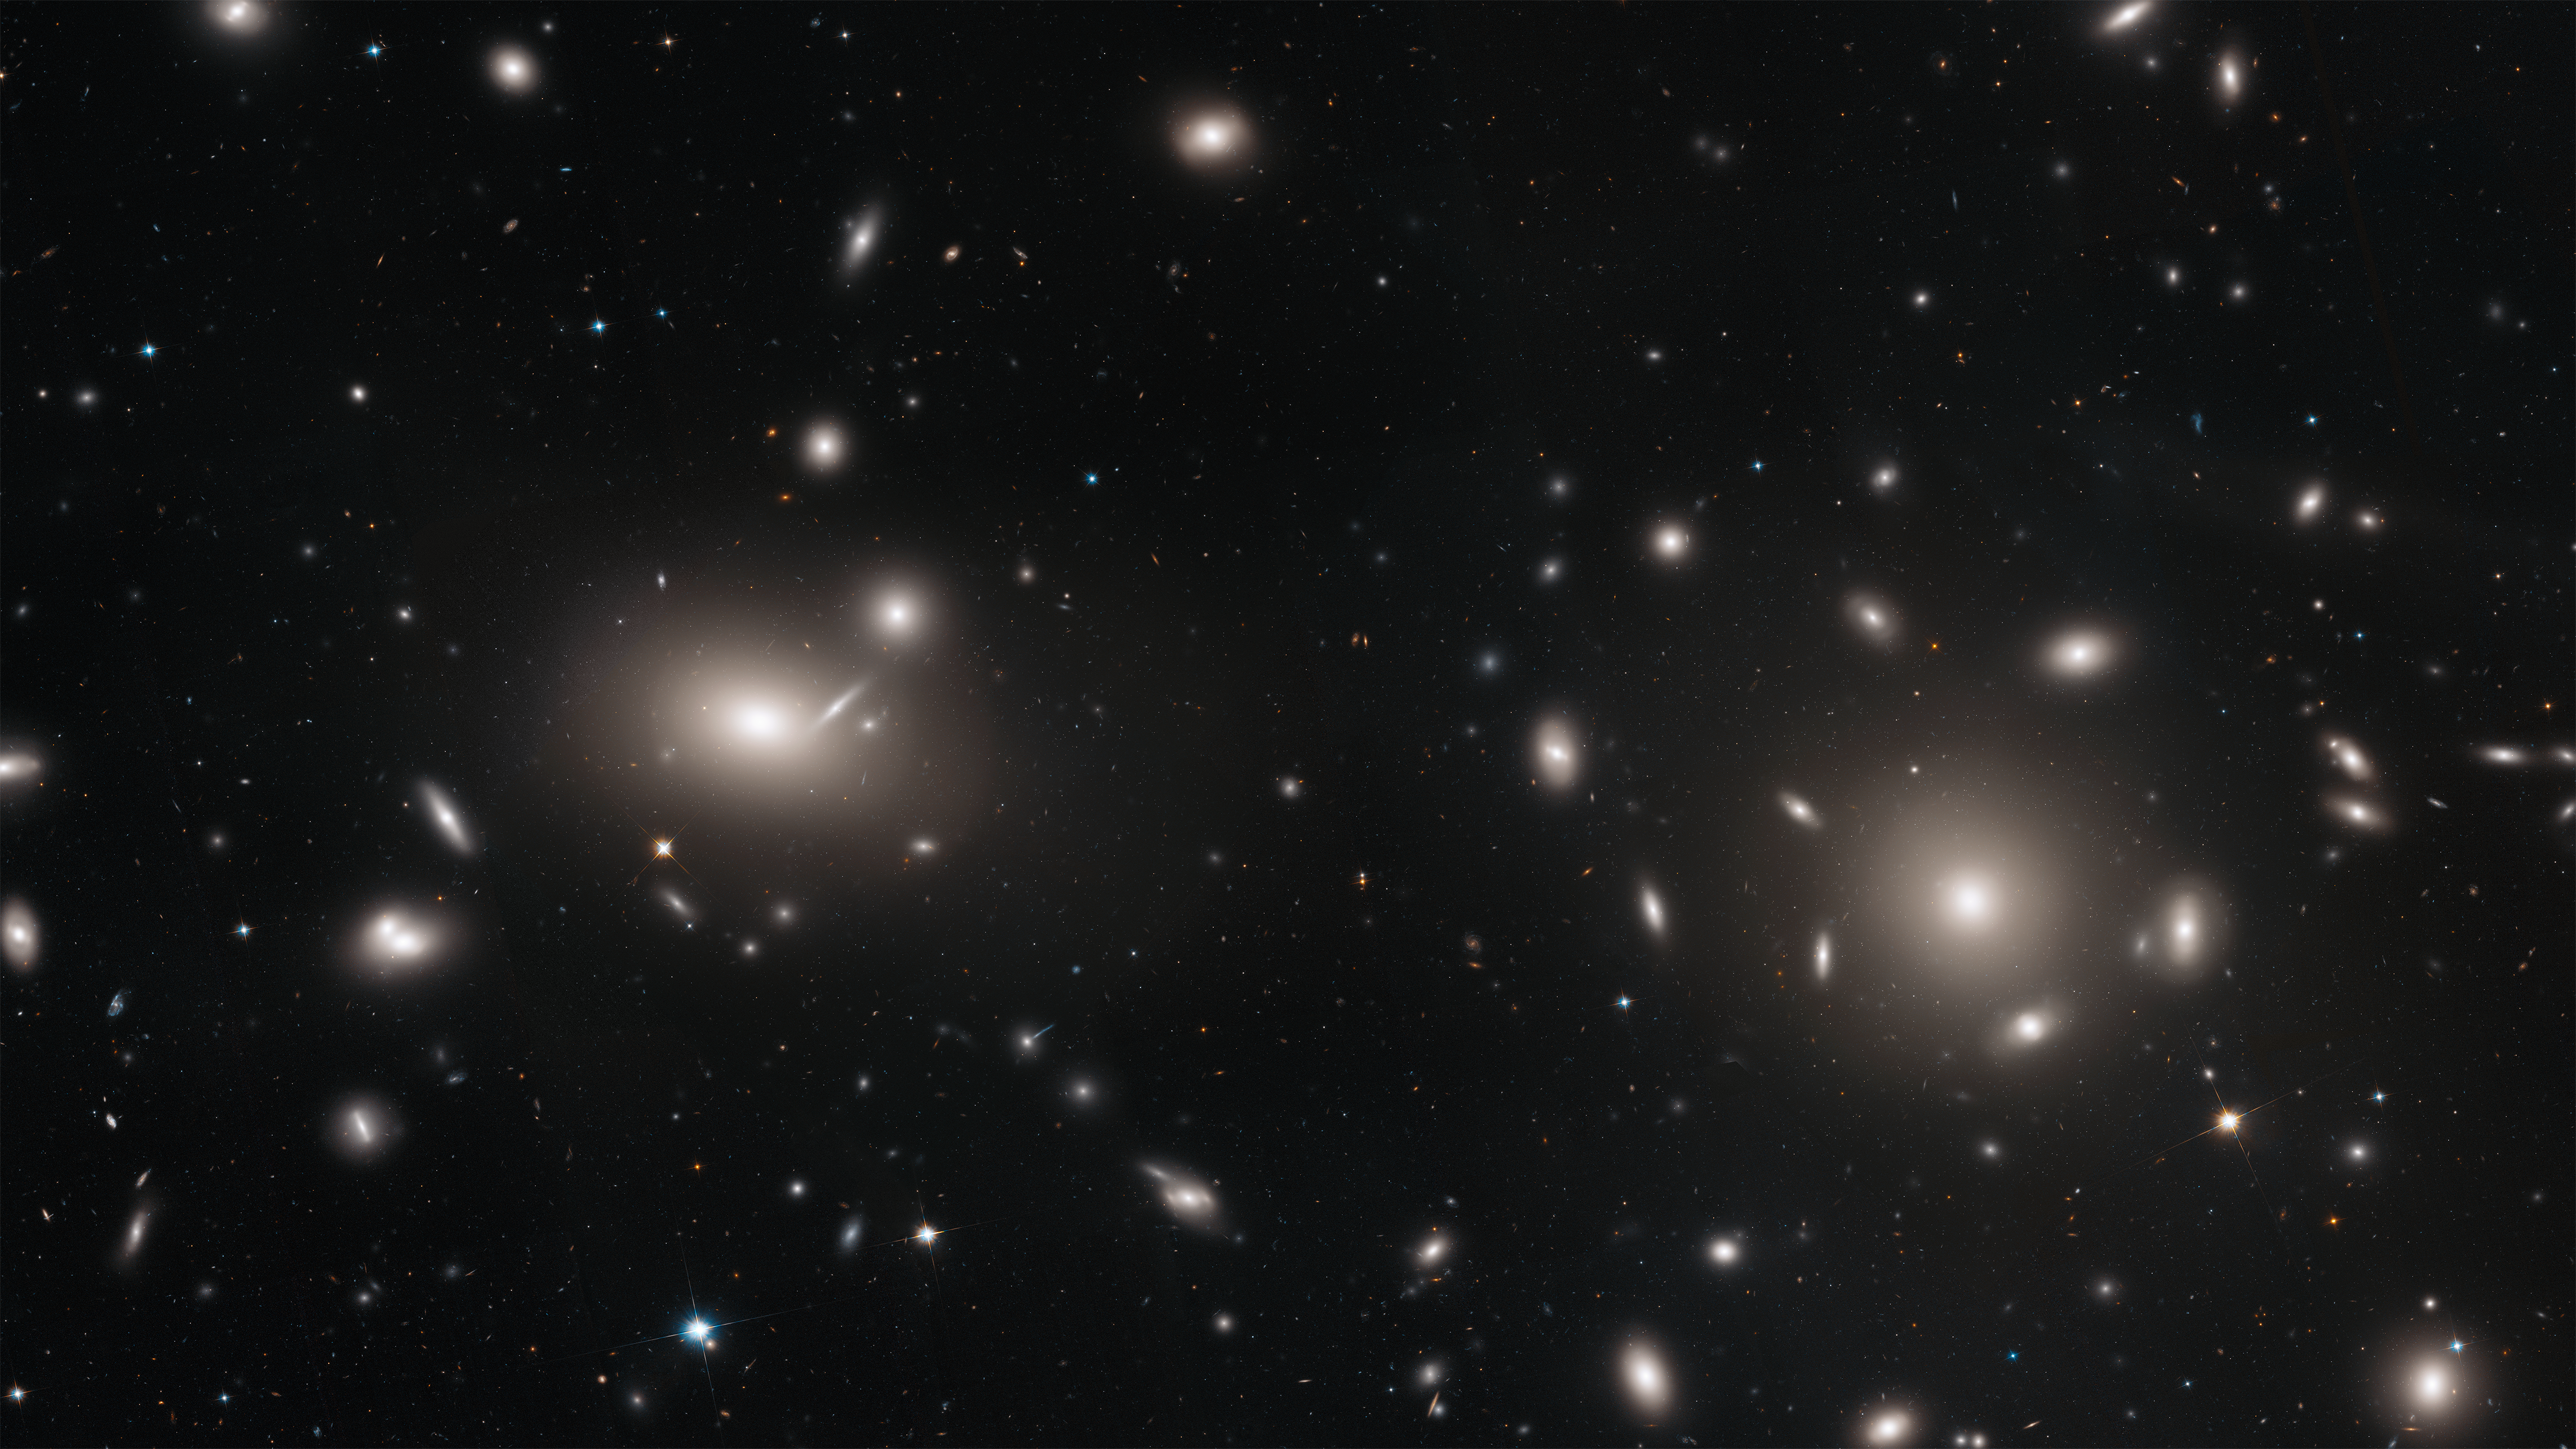 Hubble Explores the Coma Cluster's More Than 1,000 Galaxies